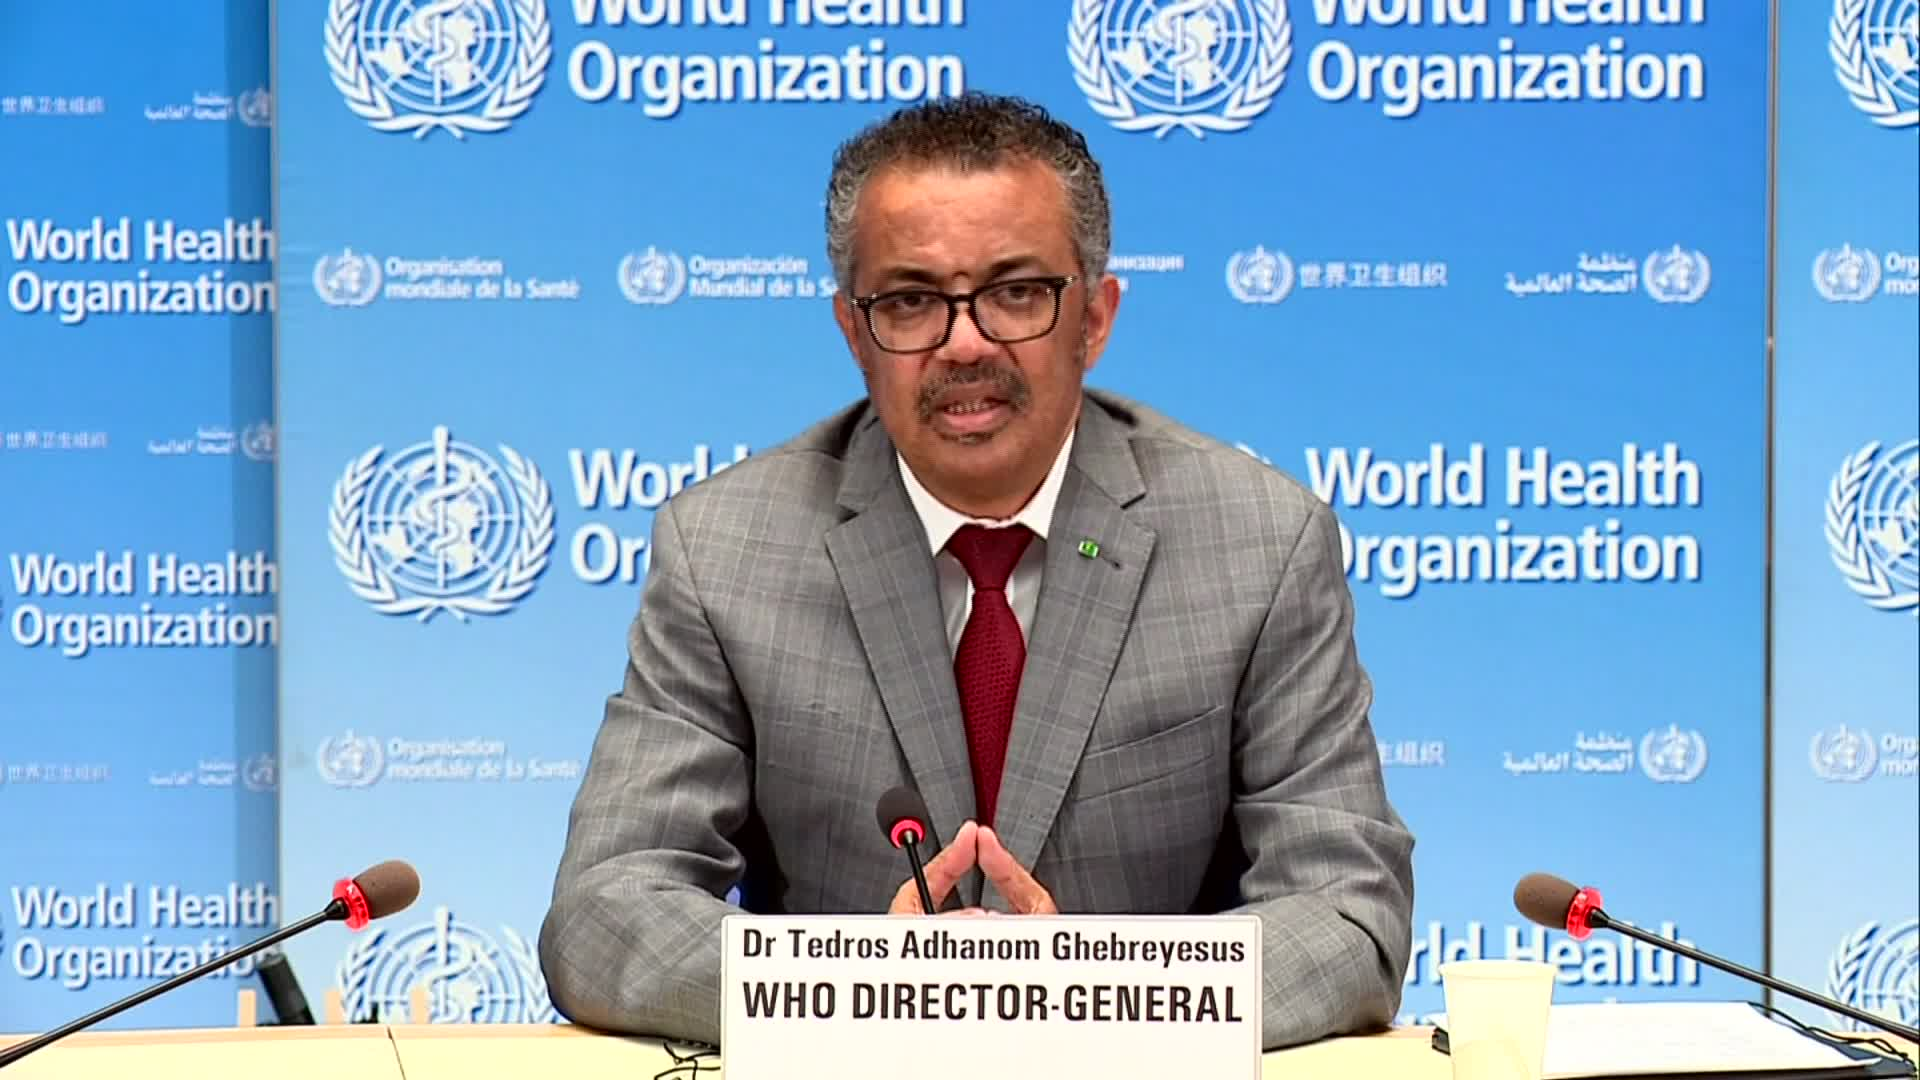 Director-General Tedros Adhanom Ghebreyesus speaks during a press conference in Geneva, Switzerland, on June 1.